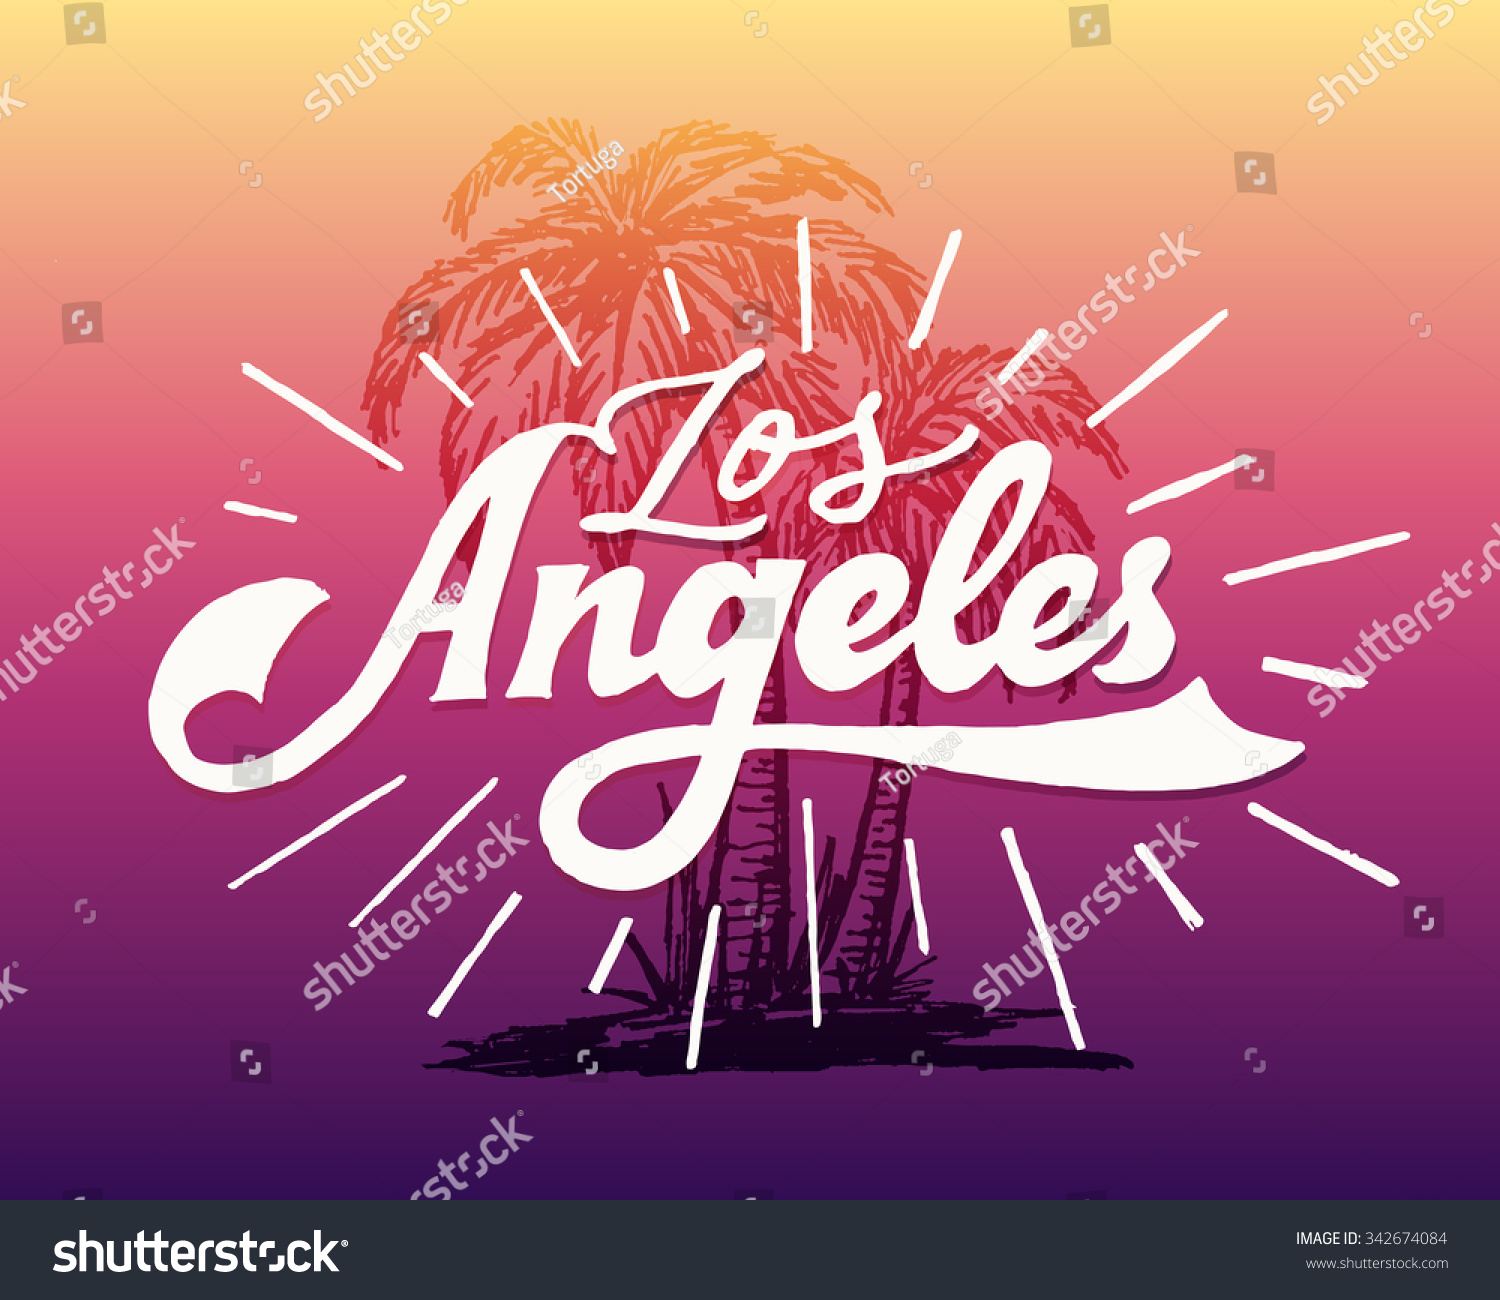 Vintage Hand Lettered Textured Los Angeles Stock Vector - Los angeles posters vintage